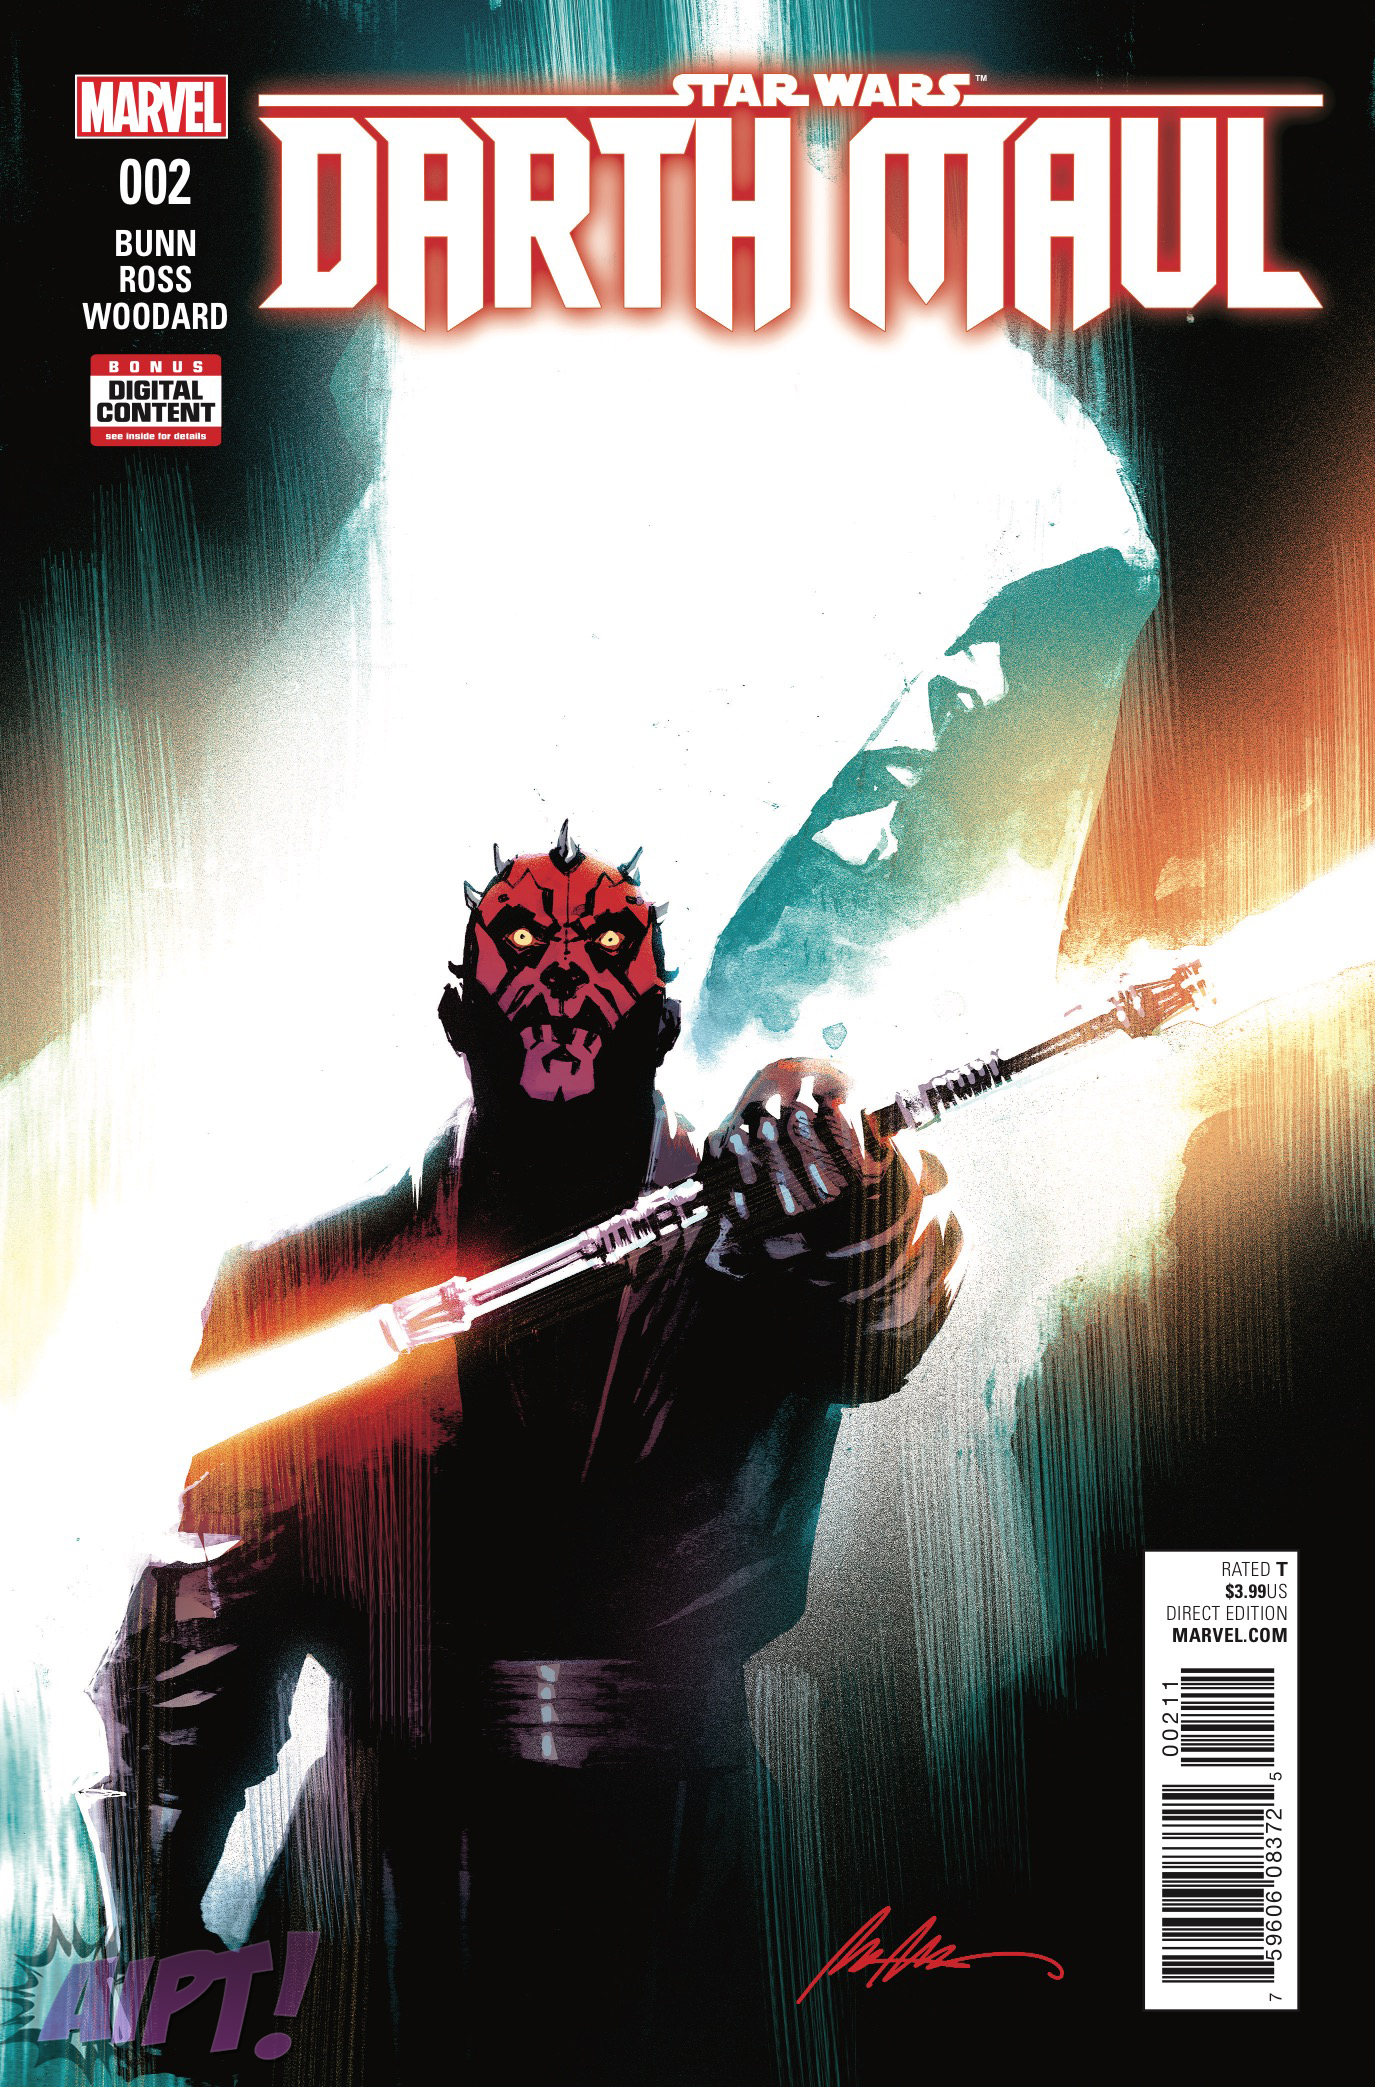 [EXCLUSIVE] Marvel Preview: Darth Maul #2